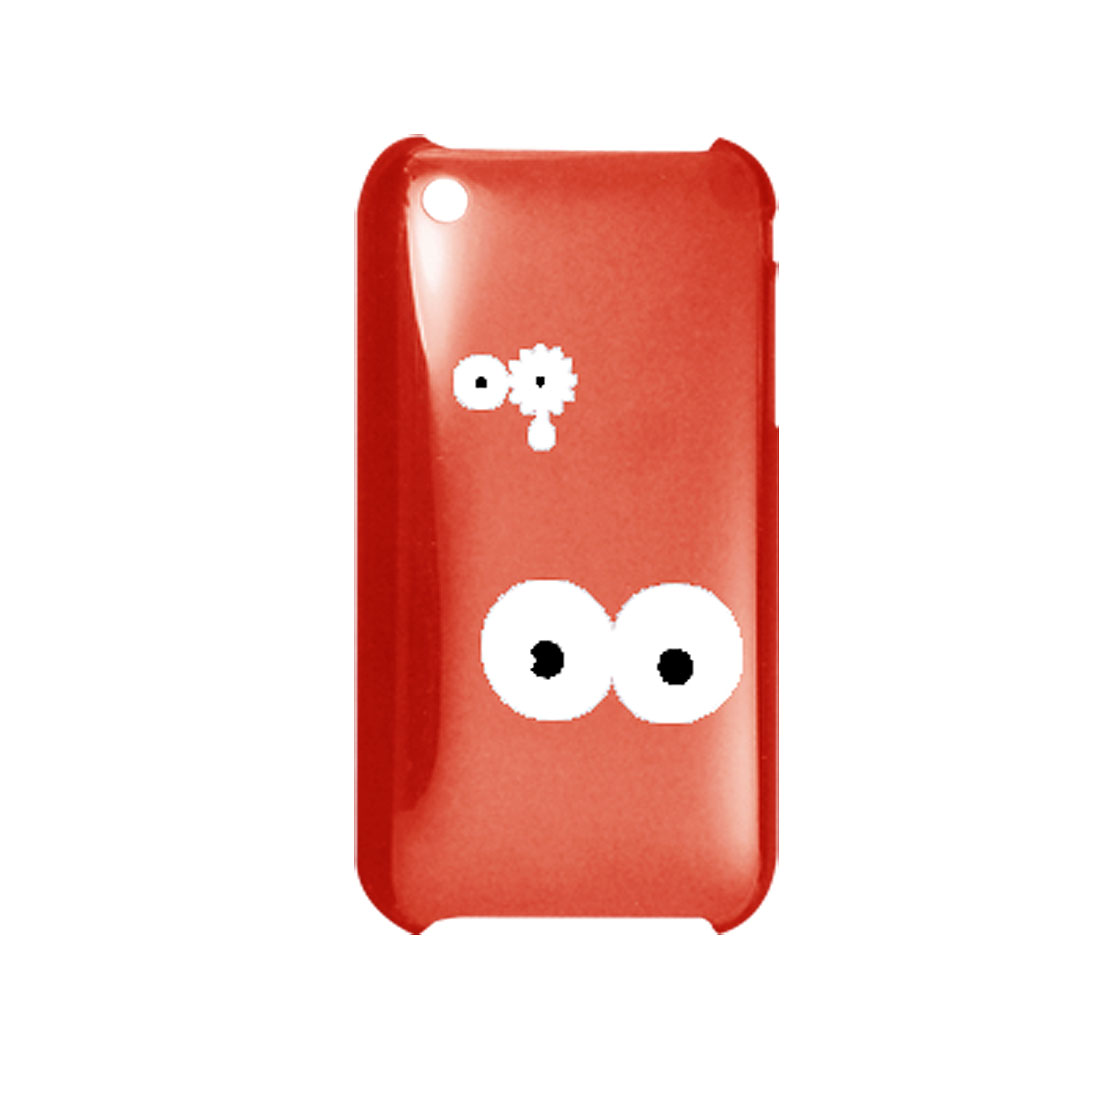 Clear Red Hard Plastic Back Eye Case Cover for iPhone 3G